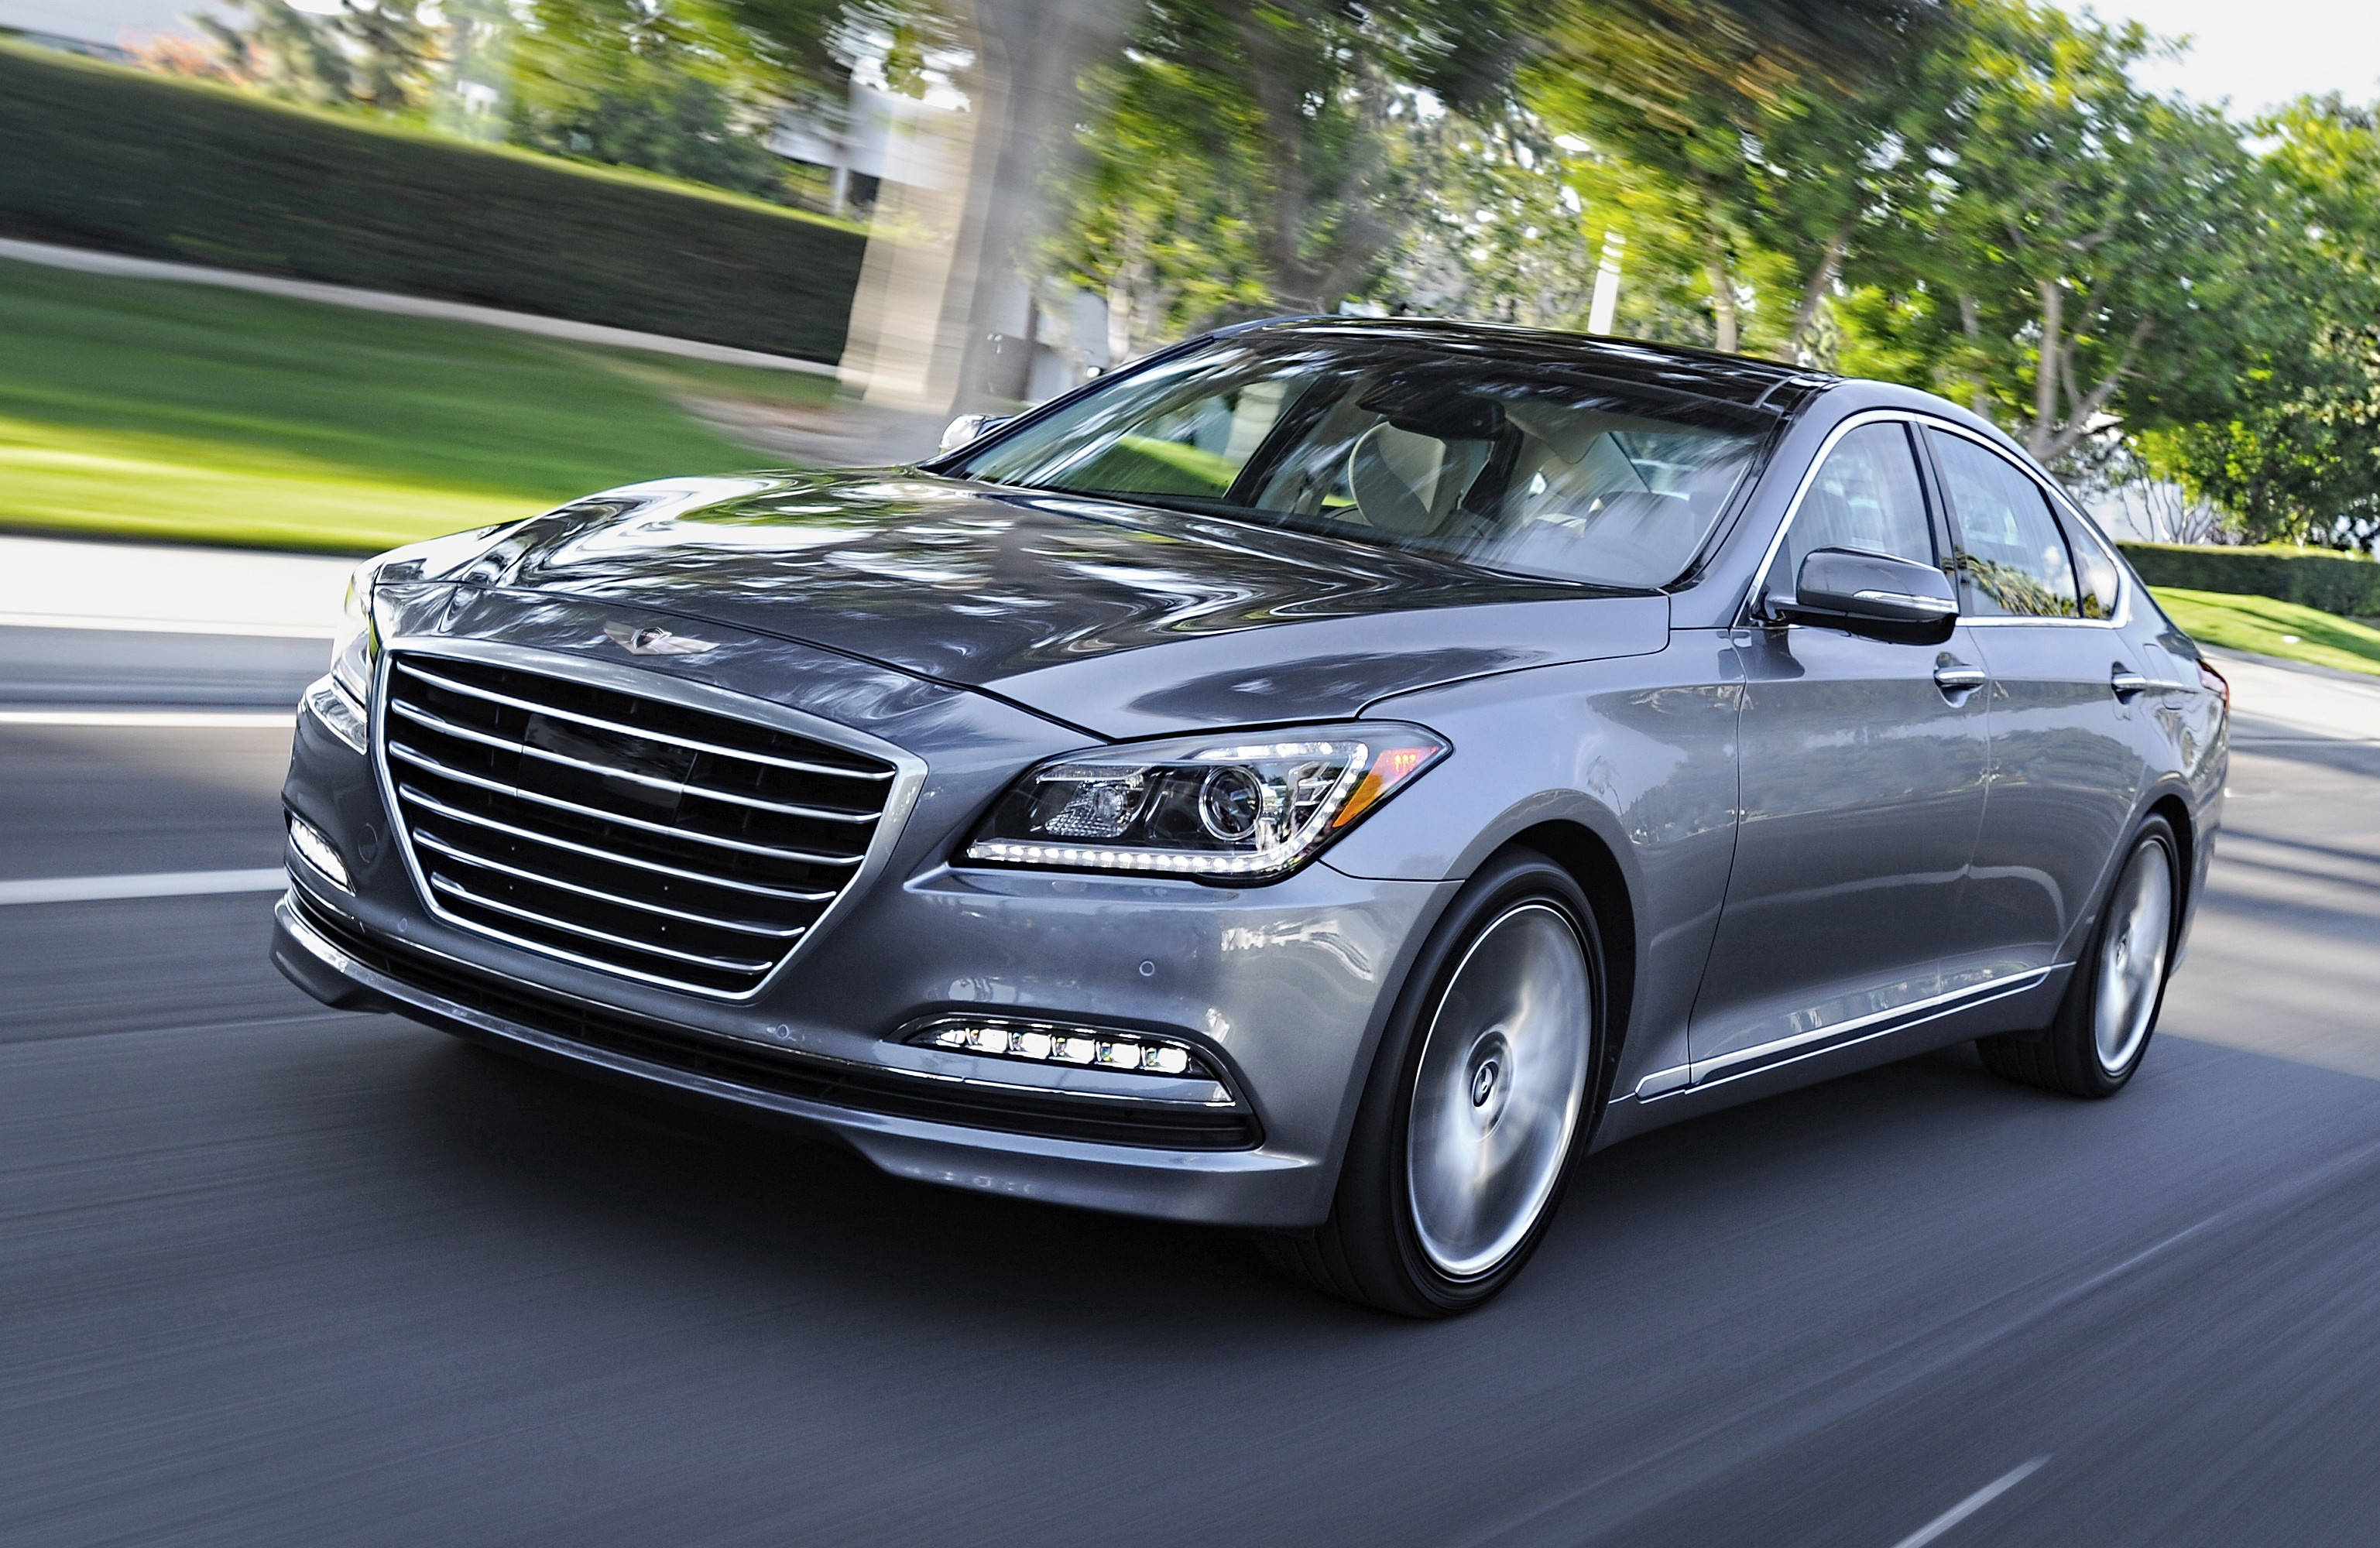 coupe auto review genesis express photo hyundai